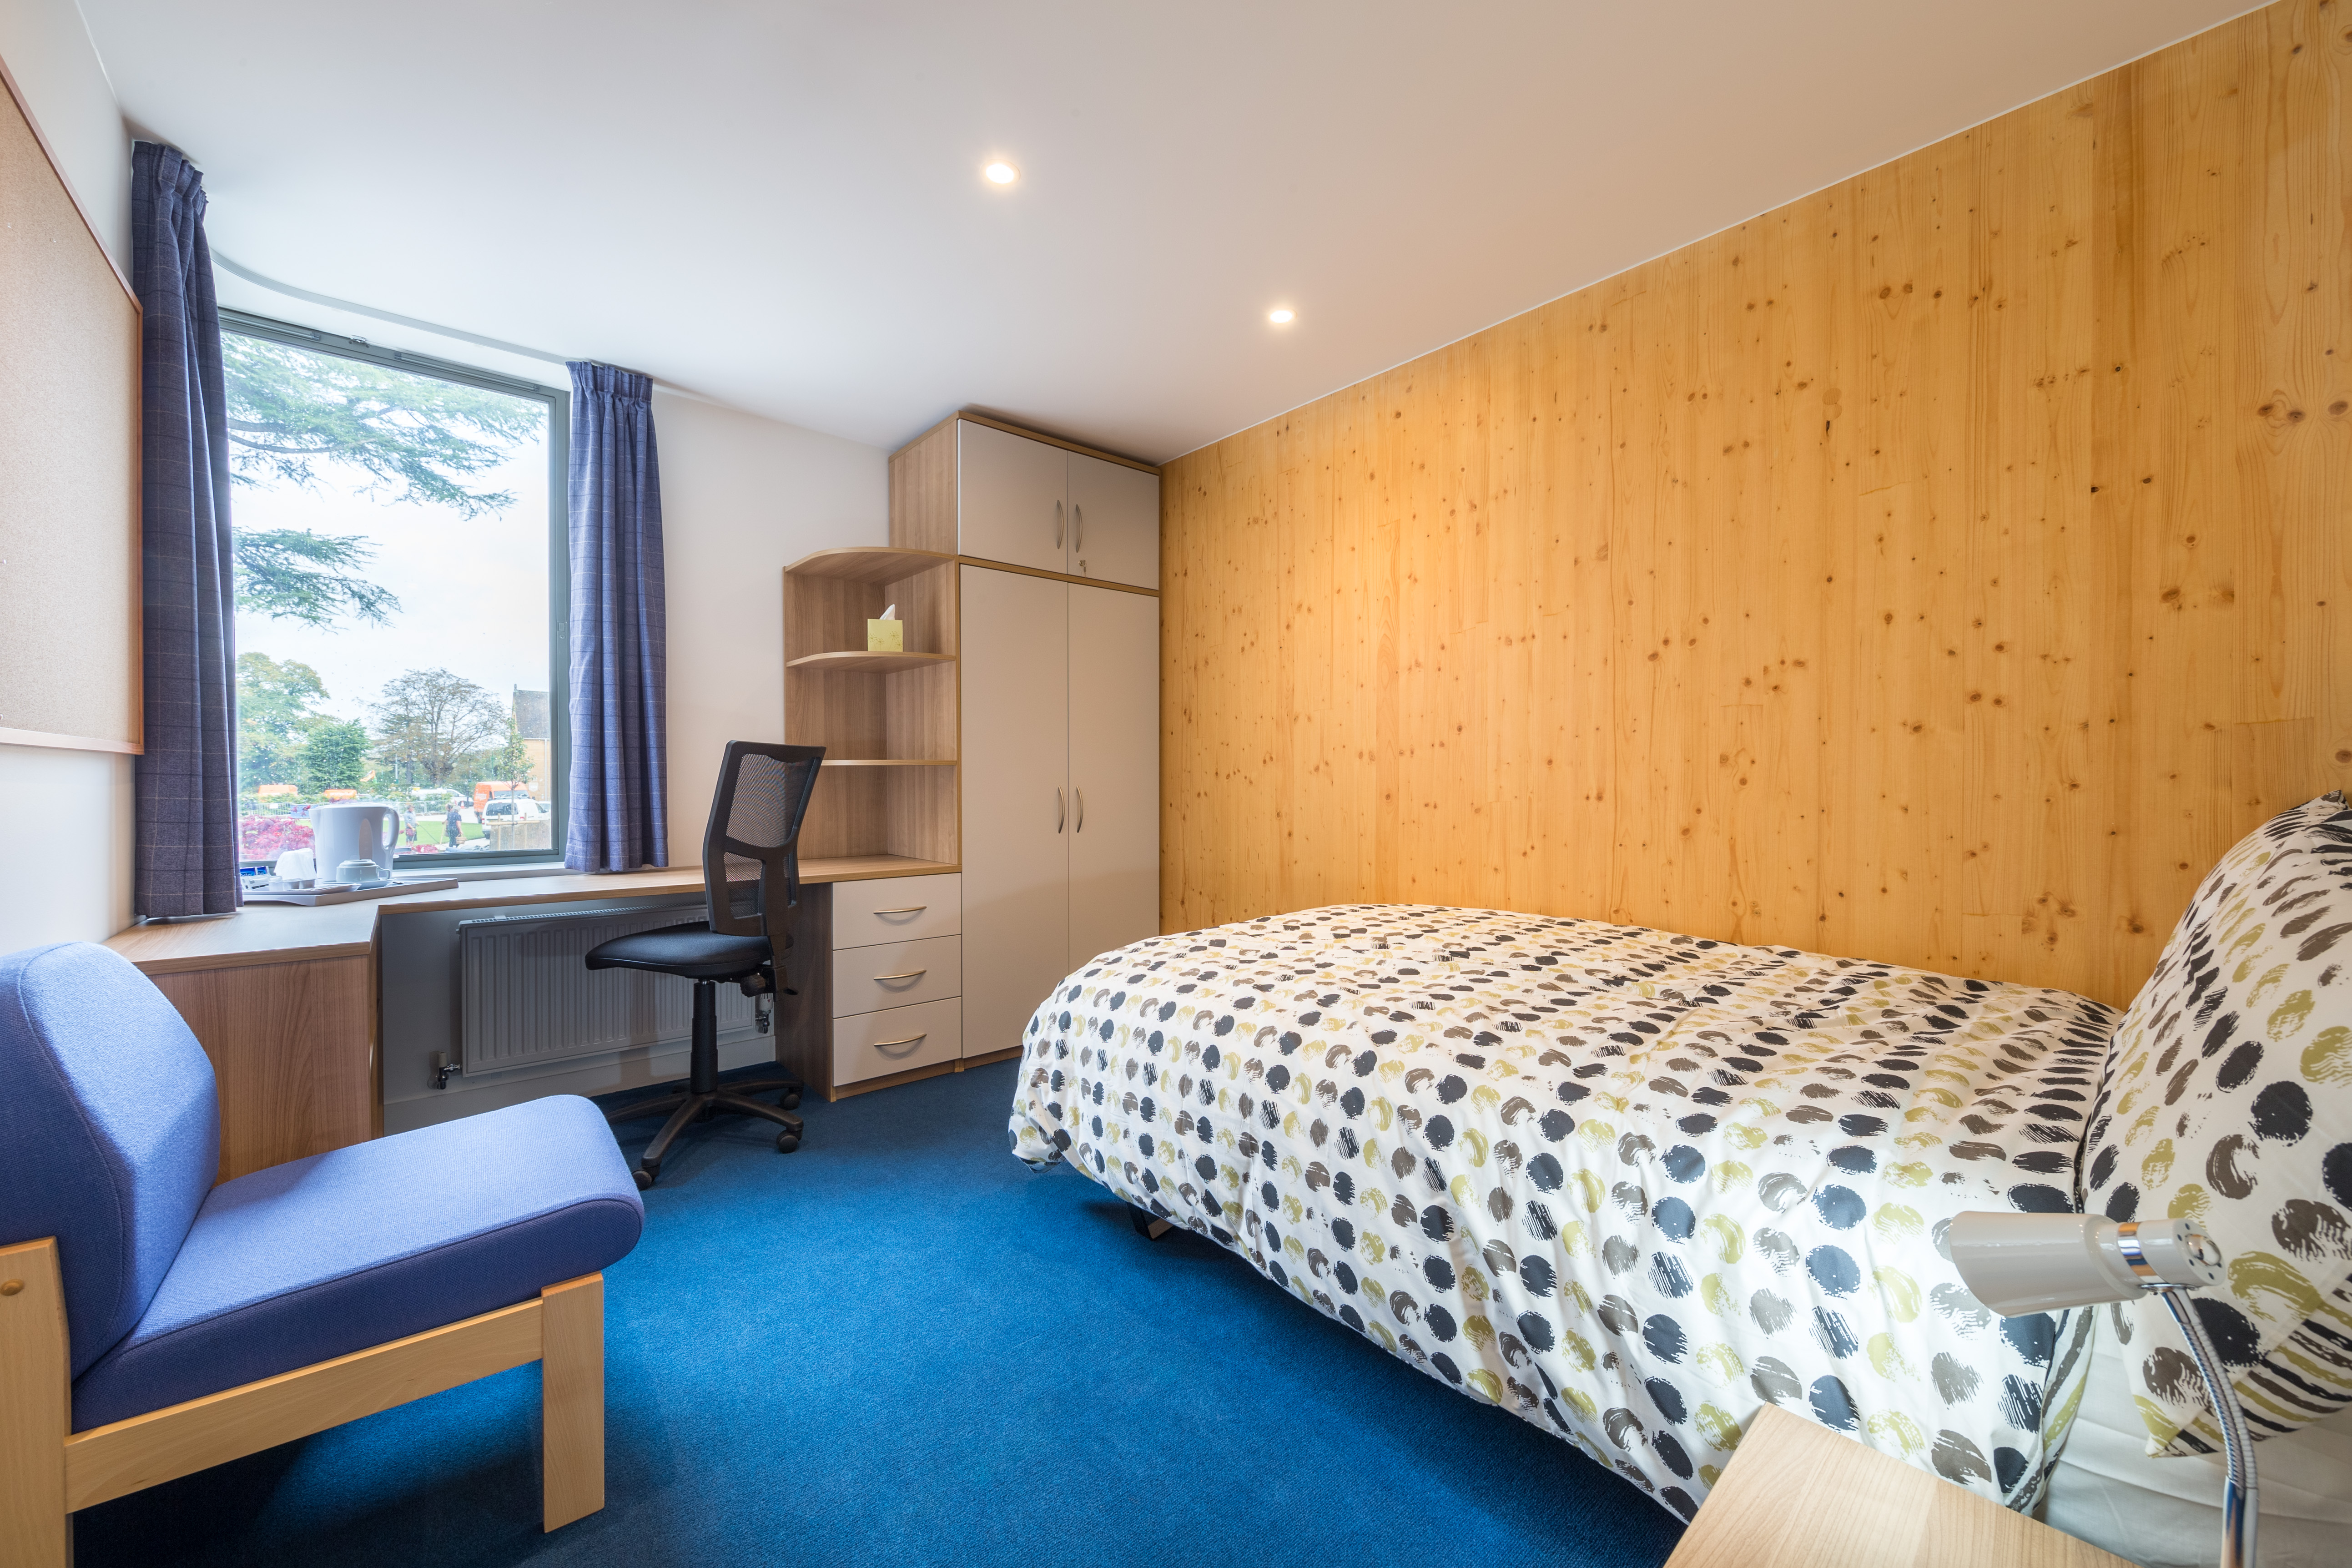 A bedroom in the Hands Building at Mansfield College